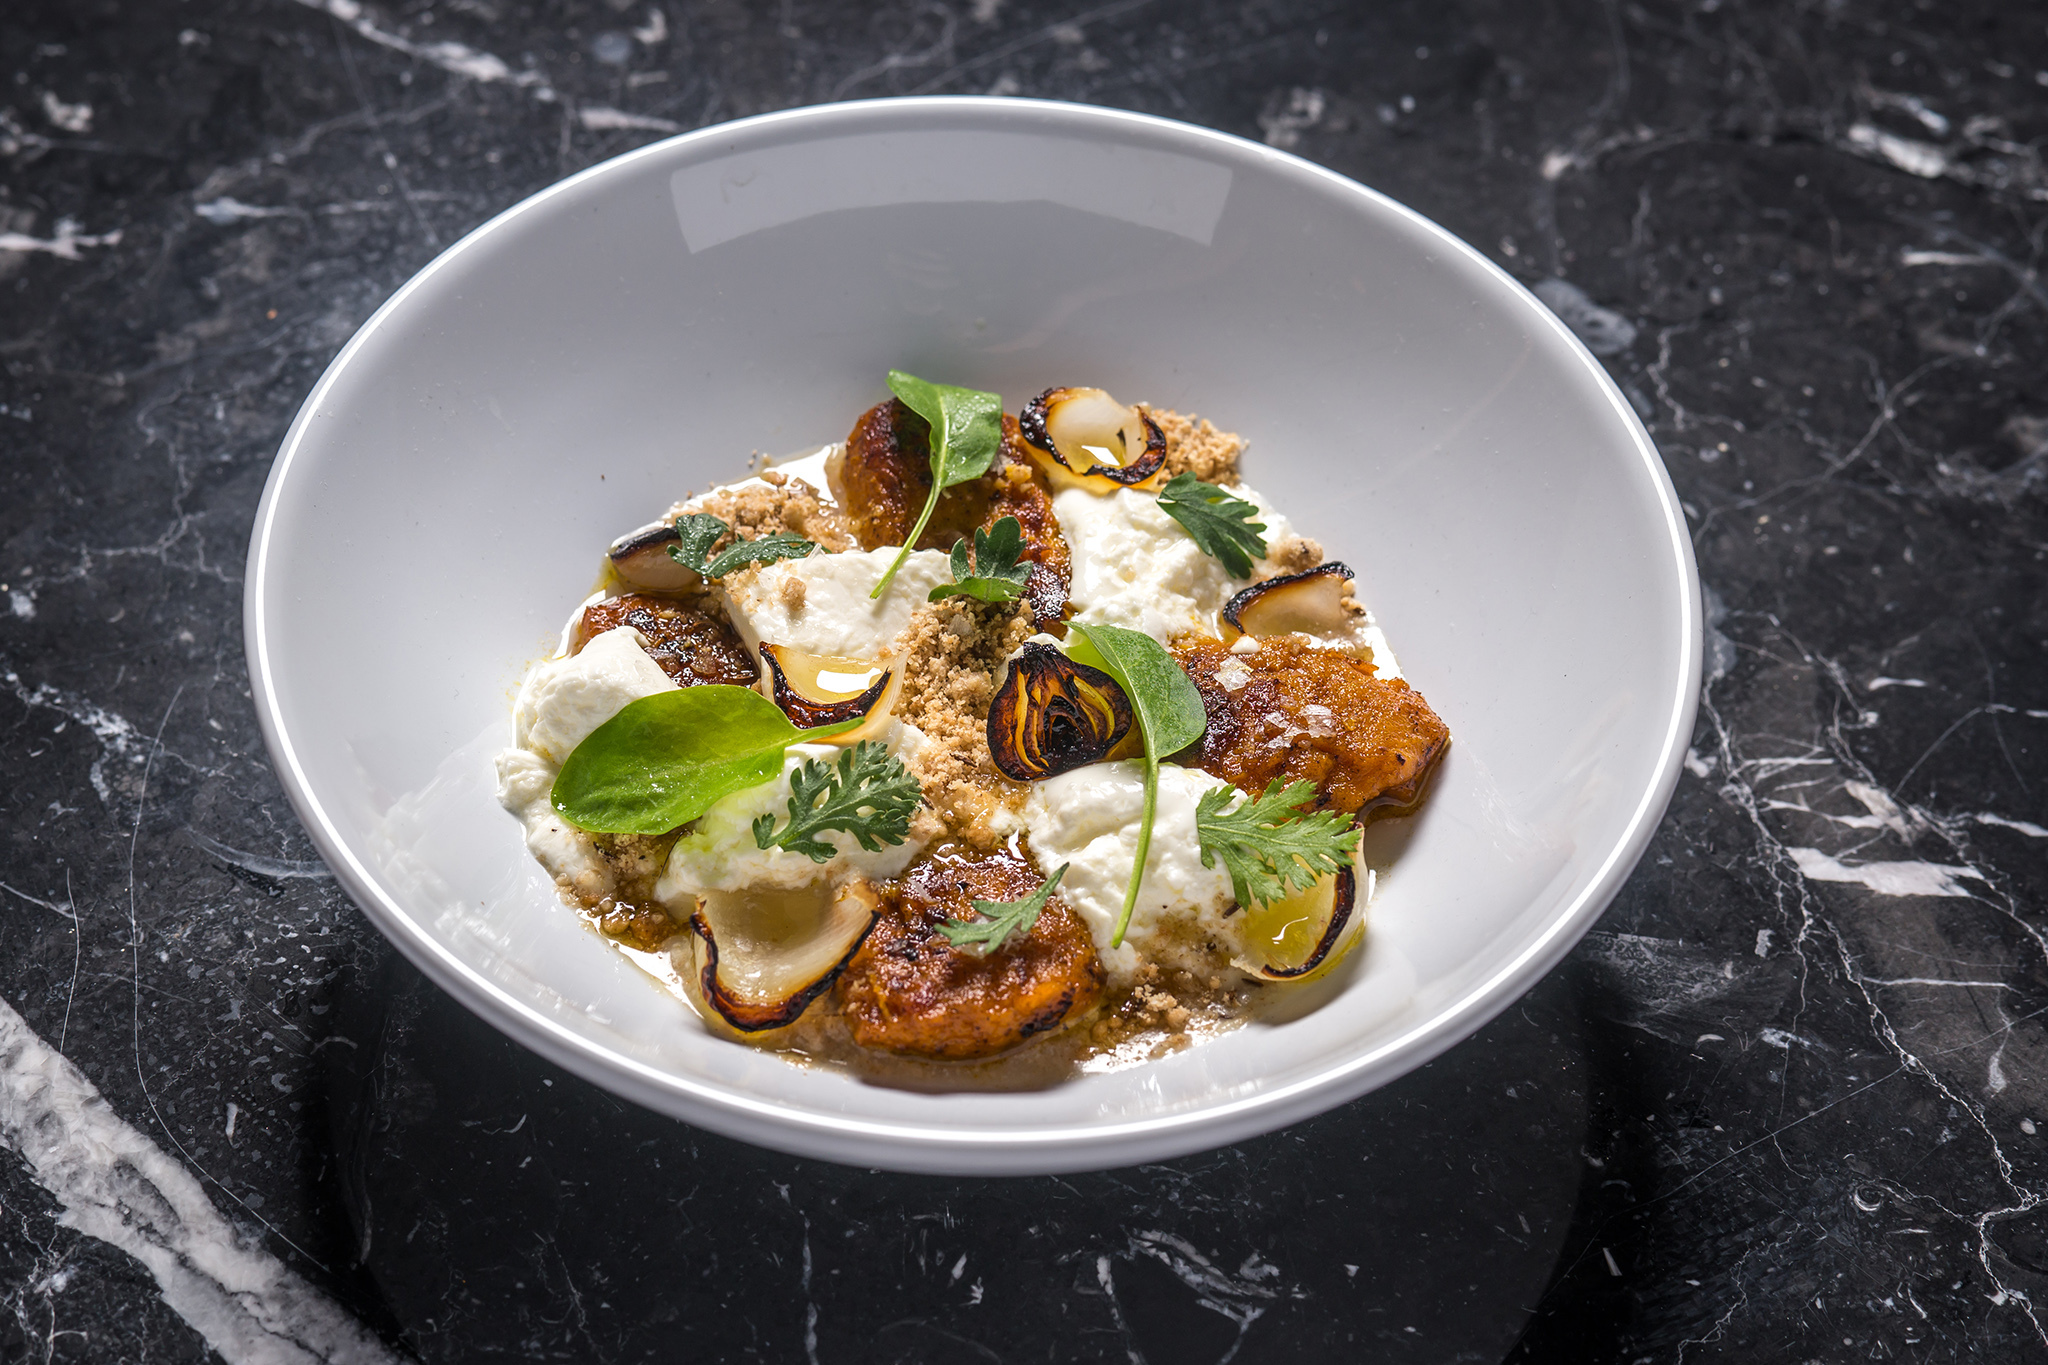 LE TURTLE kabocha and fresh cheese